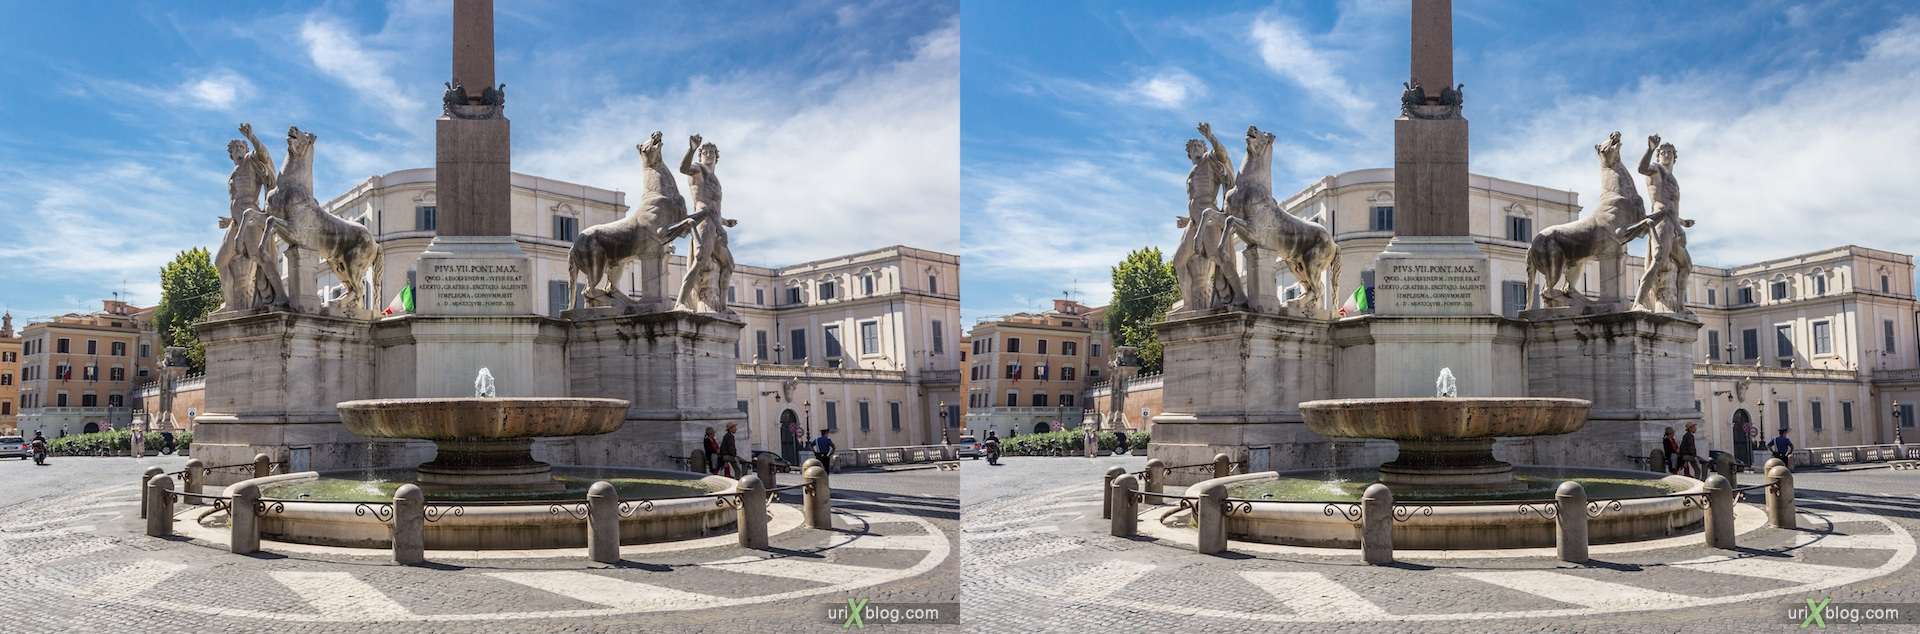 2012, fountain, Fontana dei Dioscuri, Quirinale obelisk, Piazza del Quirinale, Rome, Italy, 3D, stereo pair, cross-eyed, crossview, cross view stereo pair